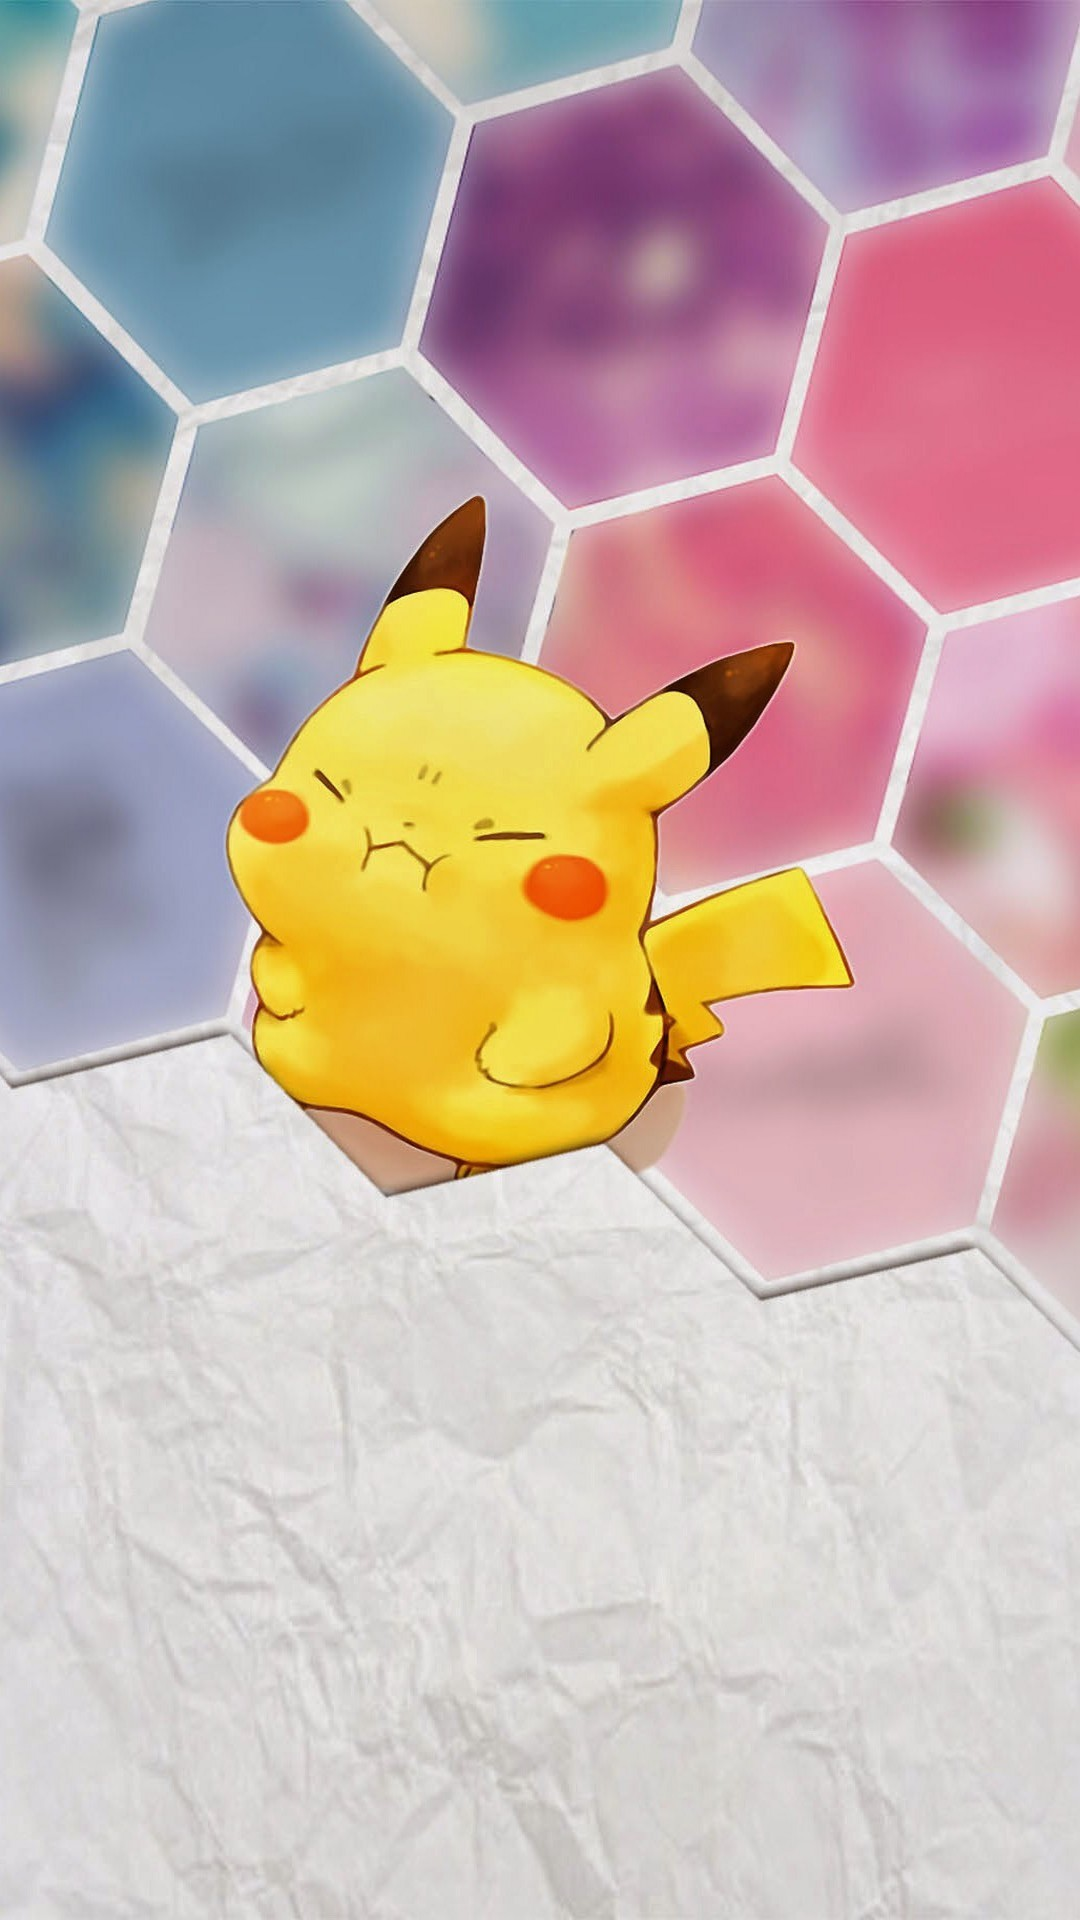 Pikachu wallpaper iphone